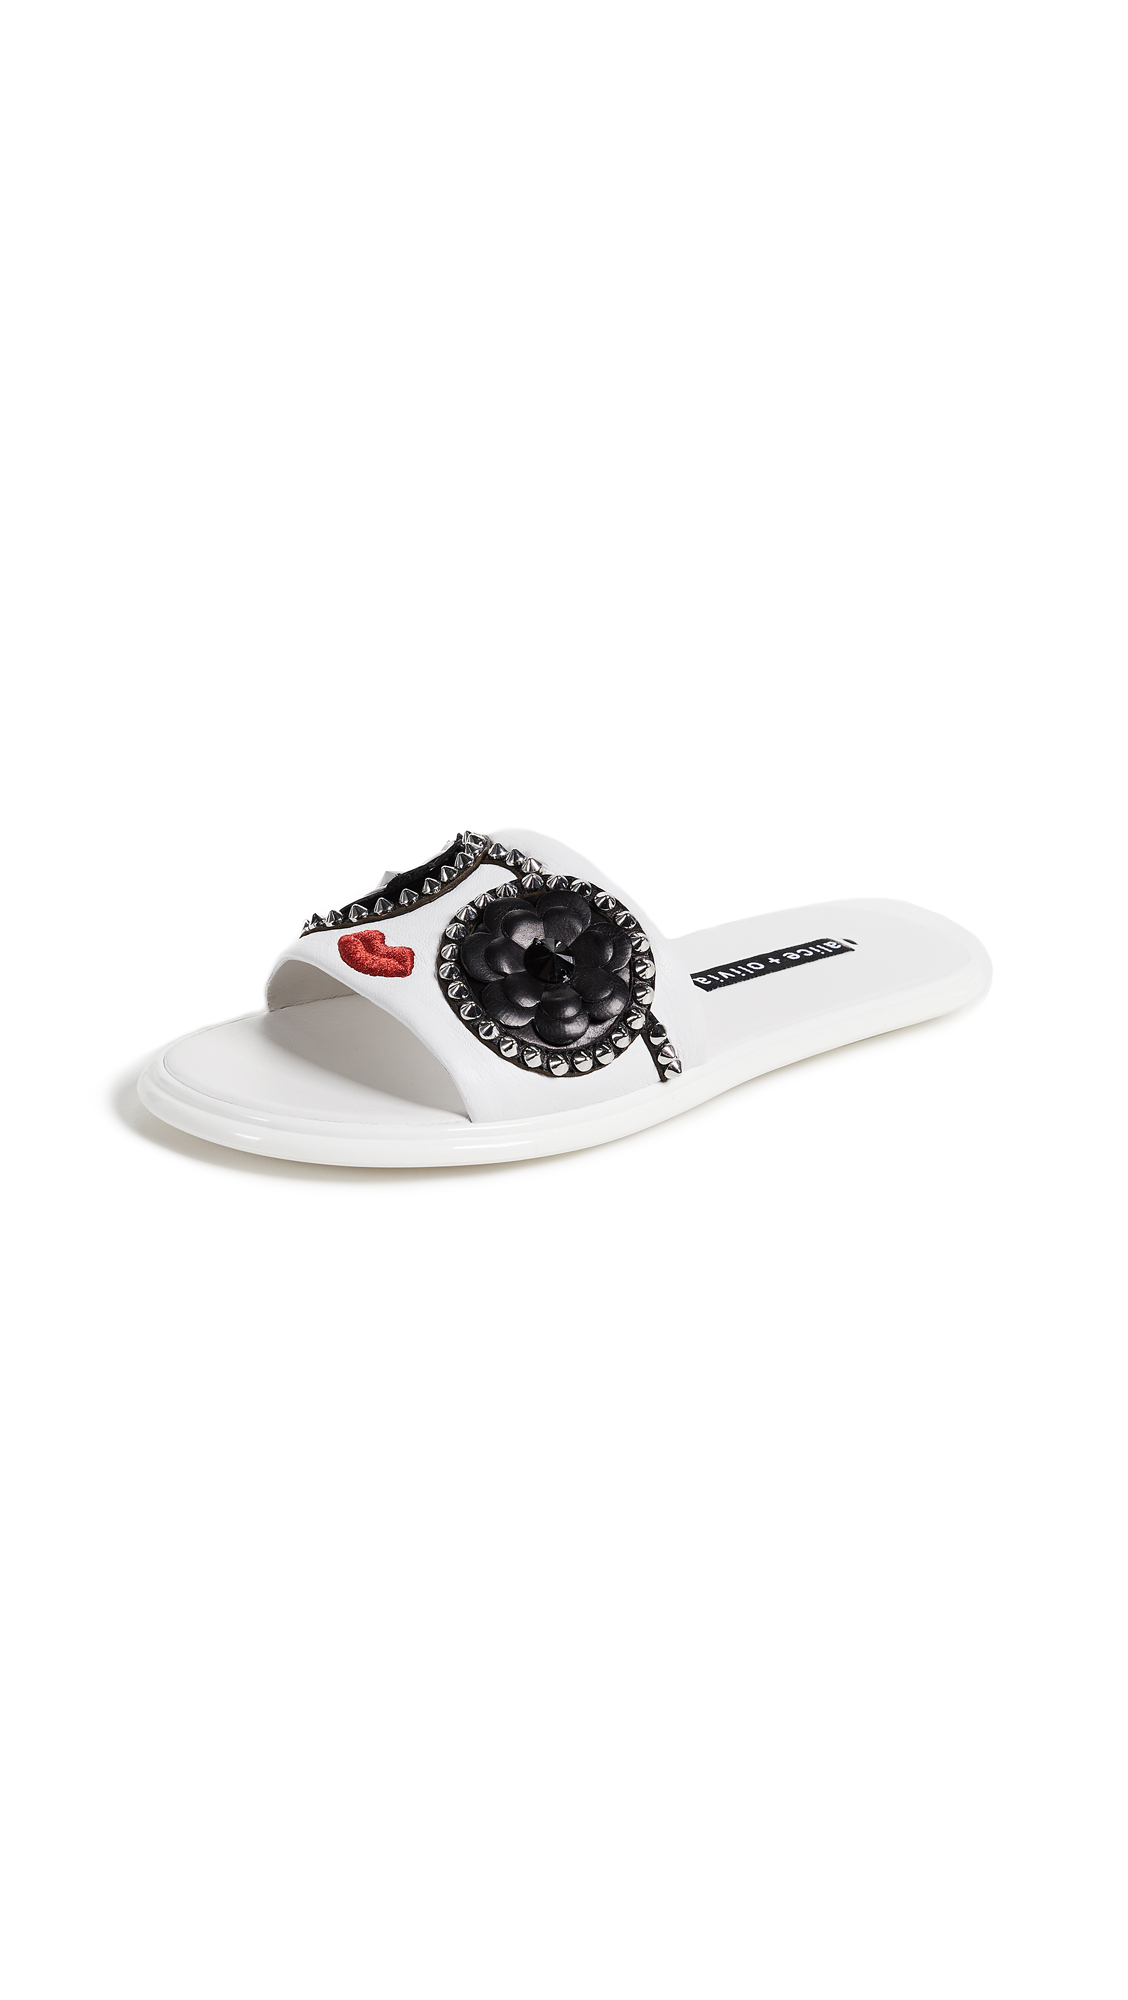 alice + olivia Tasha Stace Slides - White/Black/Red